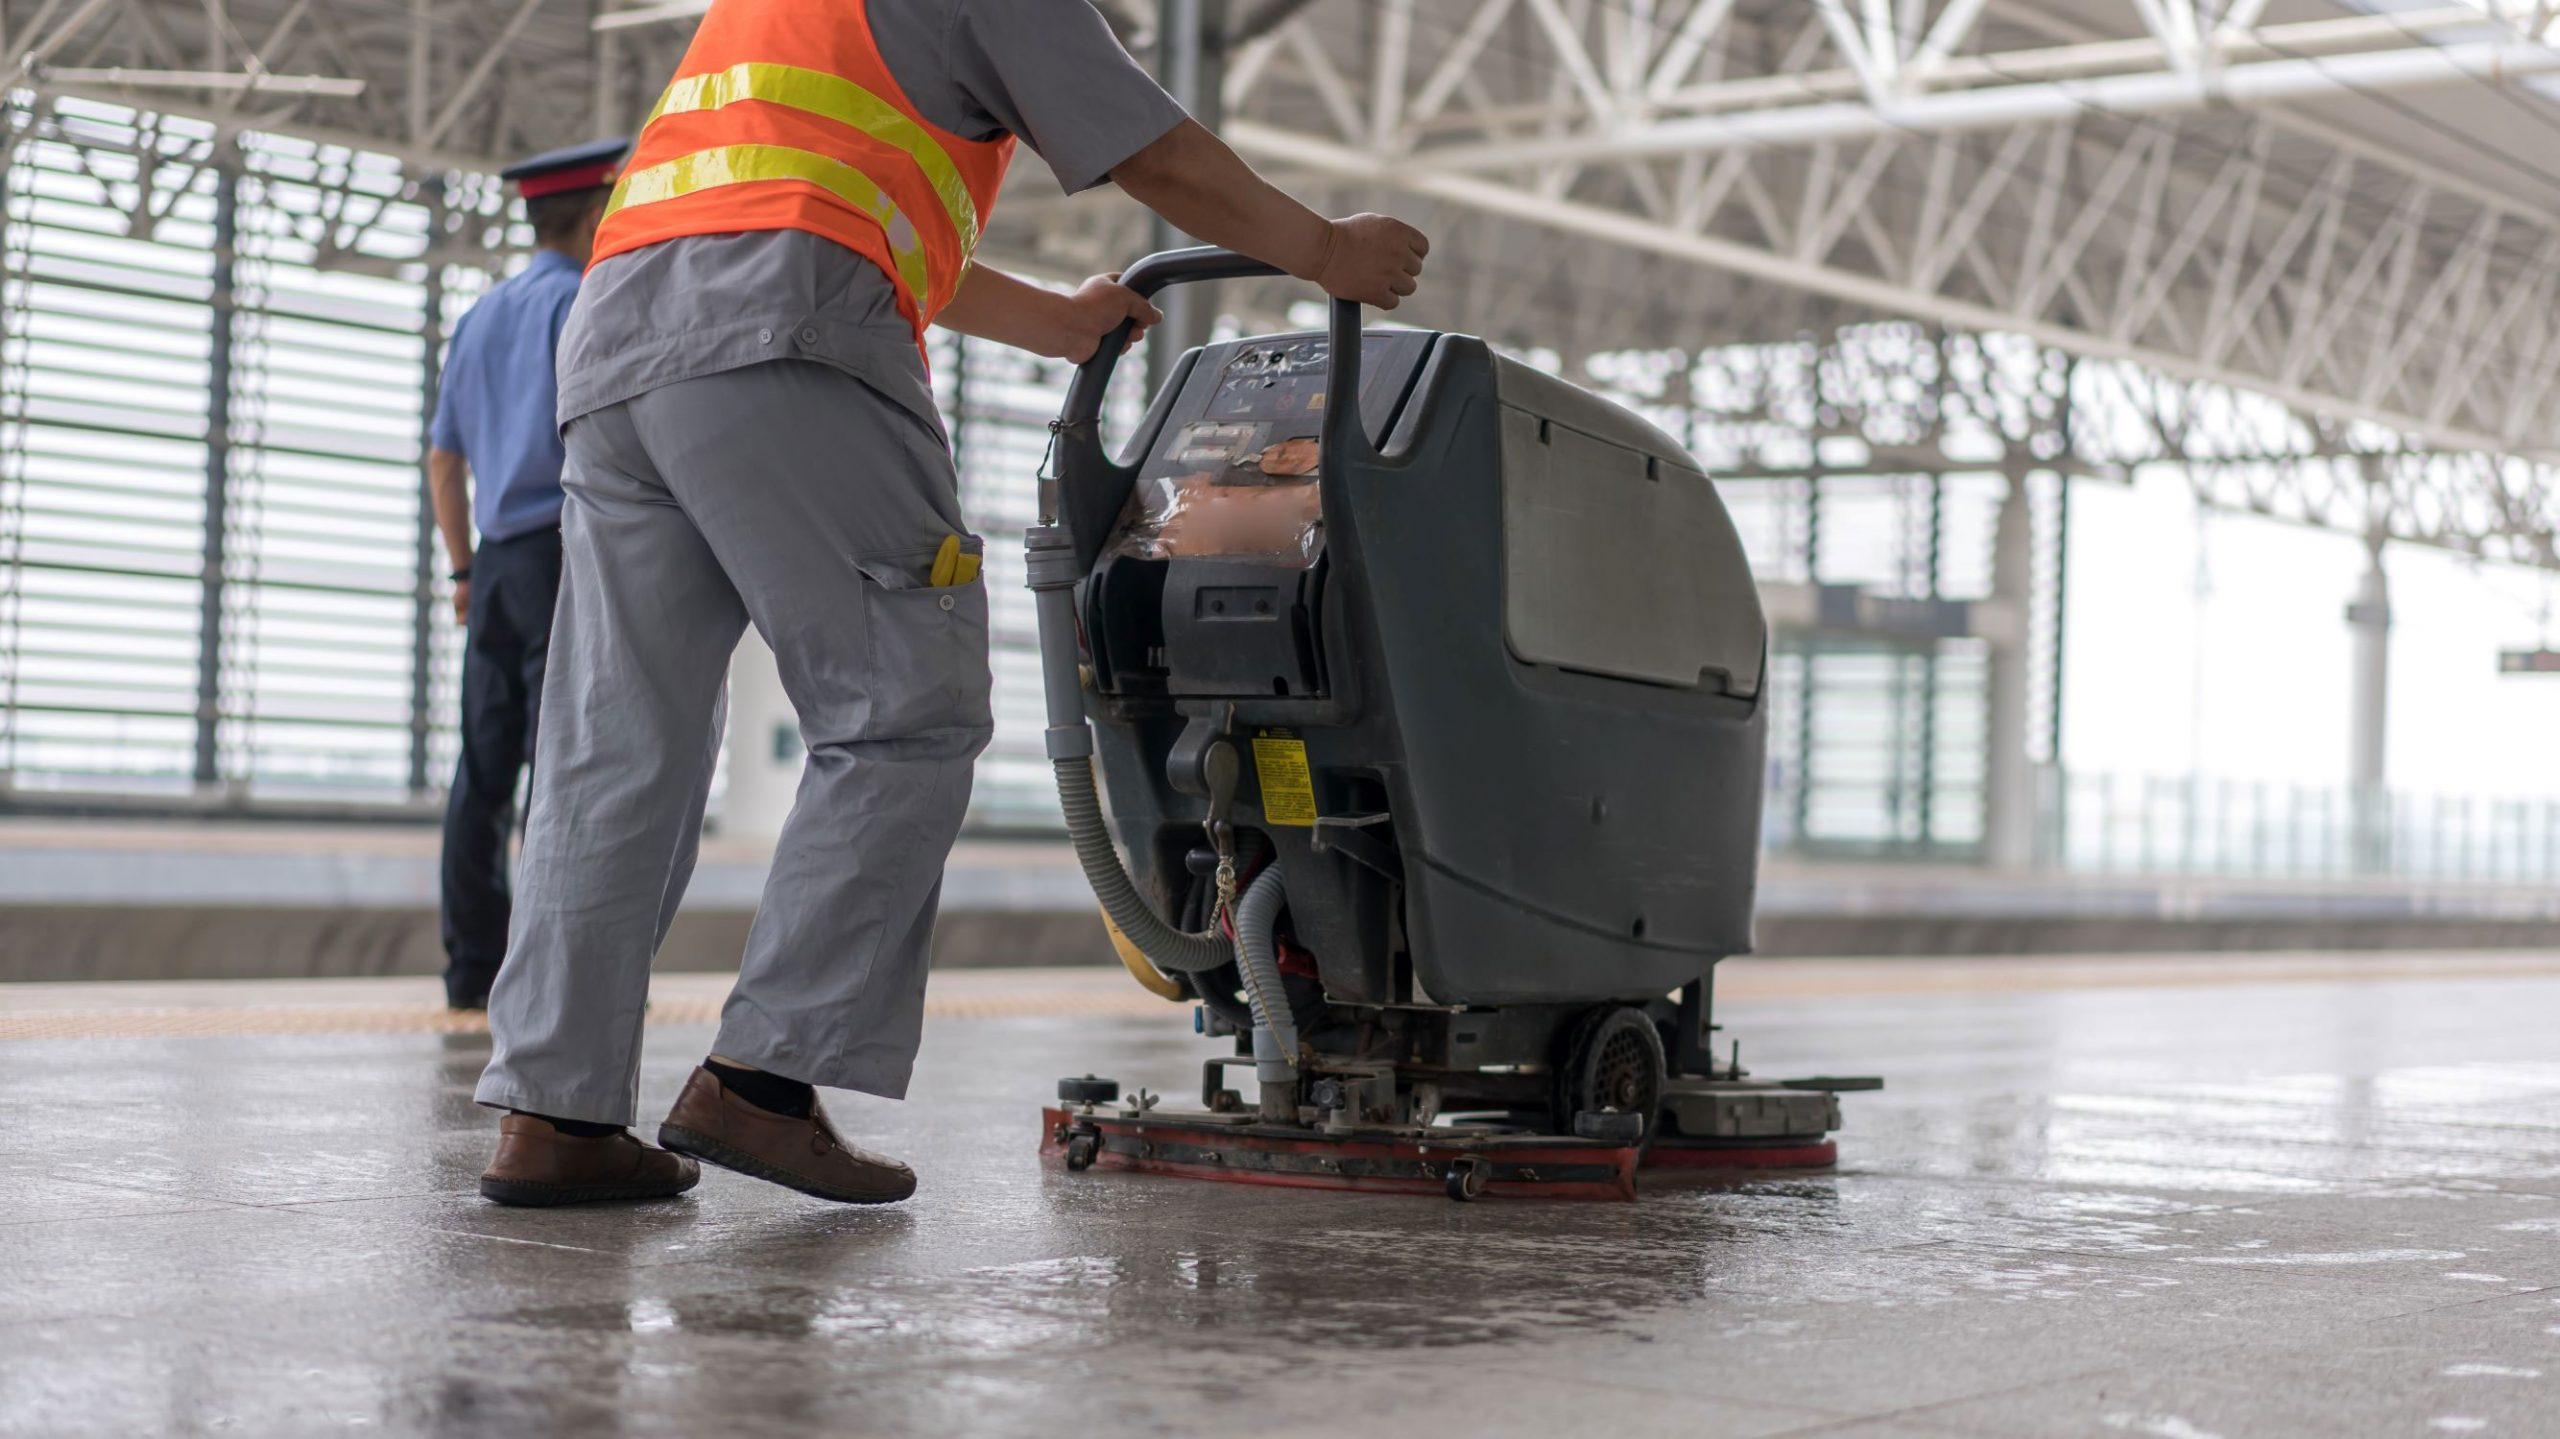 The Best Floor Cleaning Chemicals for Your Scrubber